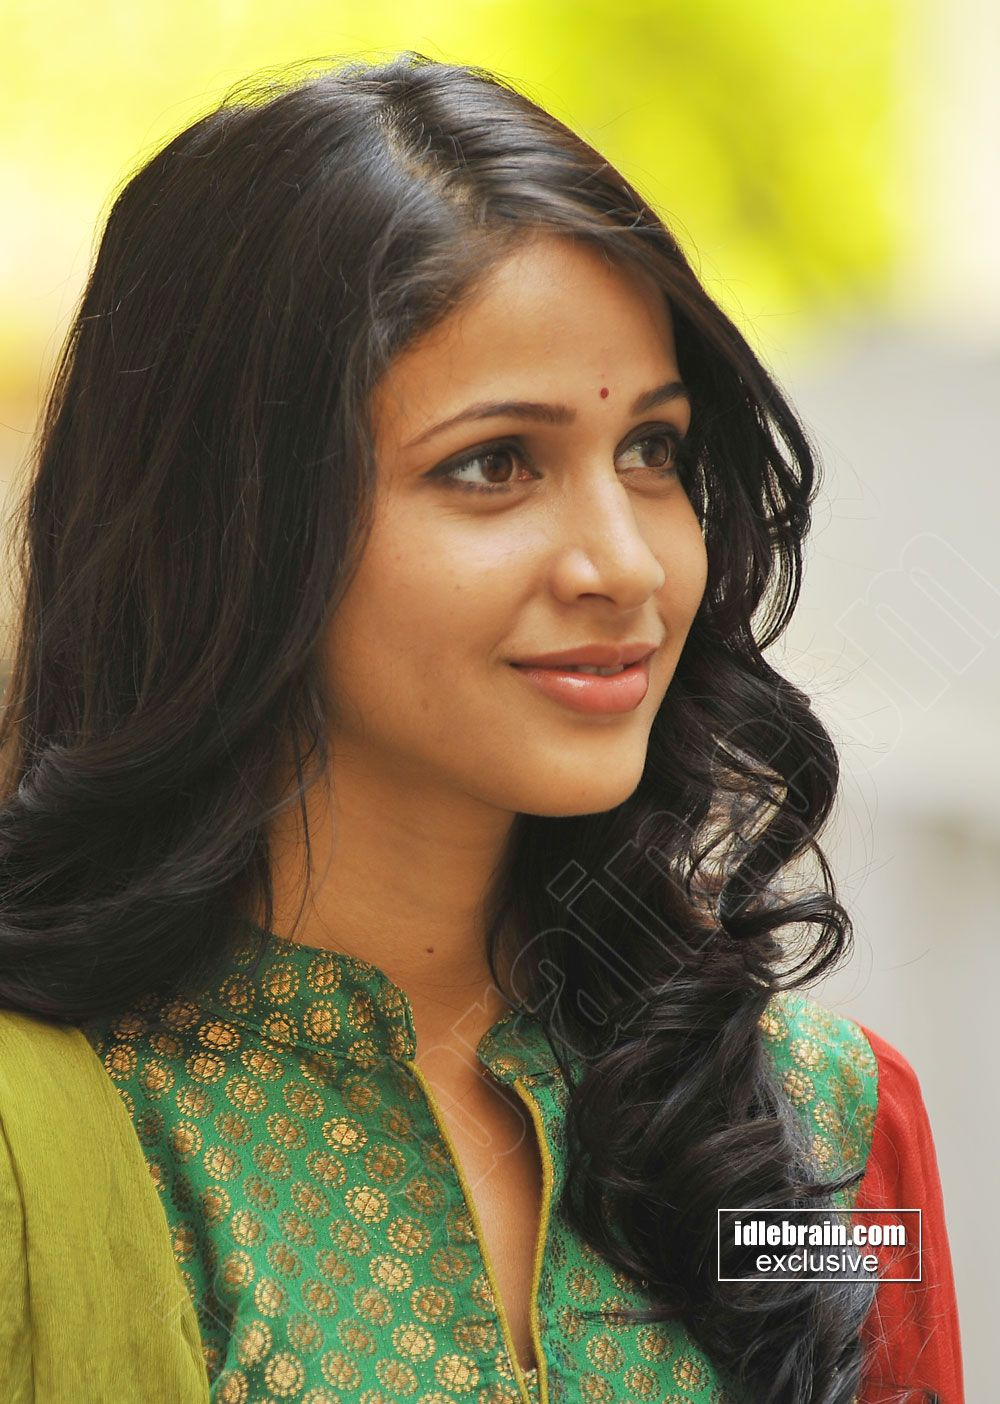 lavanya tripathilavanya tripathi, lavanya tripathi biography, lavanya tripathi images download, lavanya tripathi images, lavanya tripathi facebook, lavanya tripathi in manam, lavanya tripathi ragalahari, lavanya tripathi profile, lavanya tripathi hot pics, lavanya tripathi navel, lavanya tripathi hot images, lavanya tripathi twitter, lavanya tripathi hot photos, lavanya tripathi height, lavanya tripathi date of birth